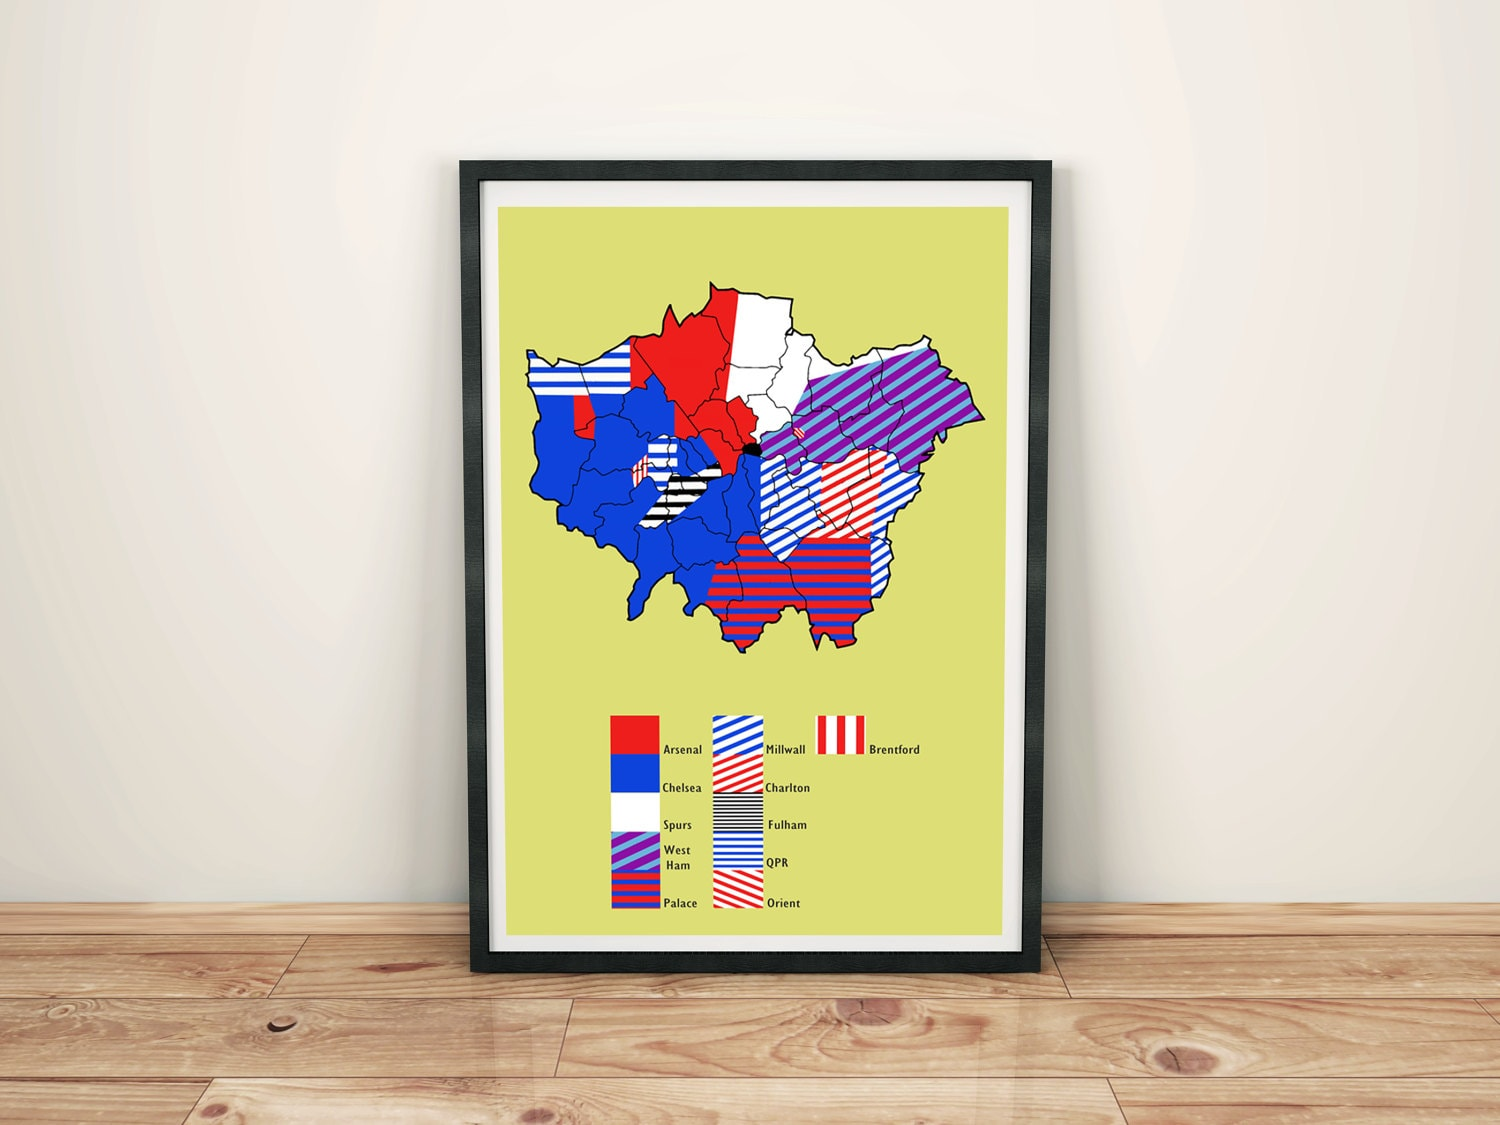 London football club territory map art print zoom jeuxipadfo Gallery